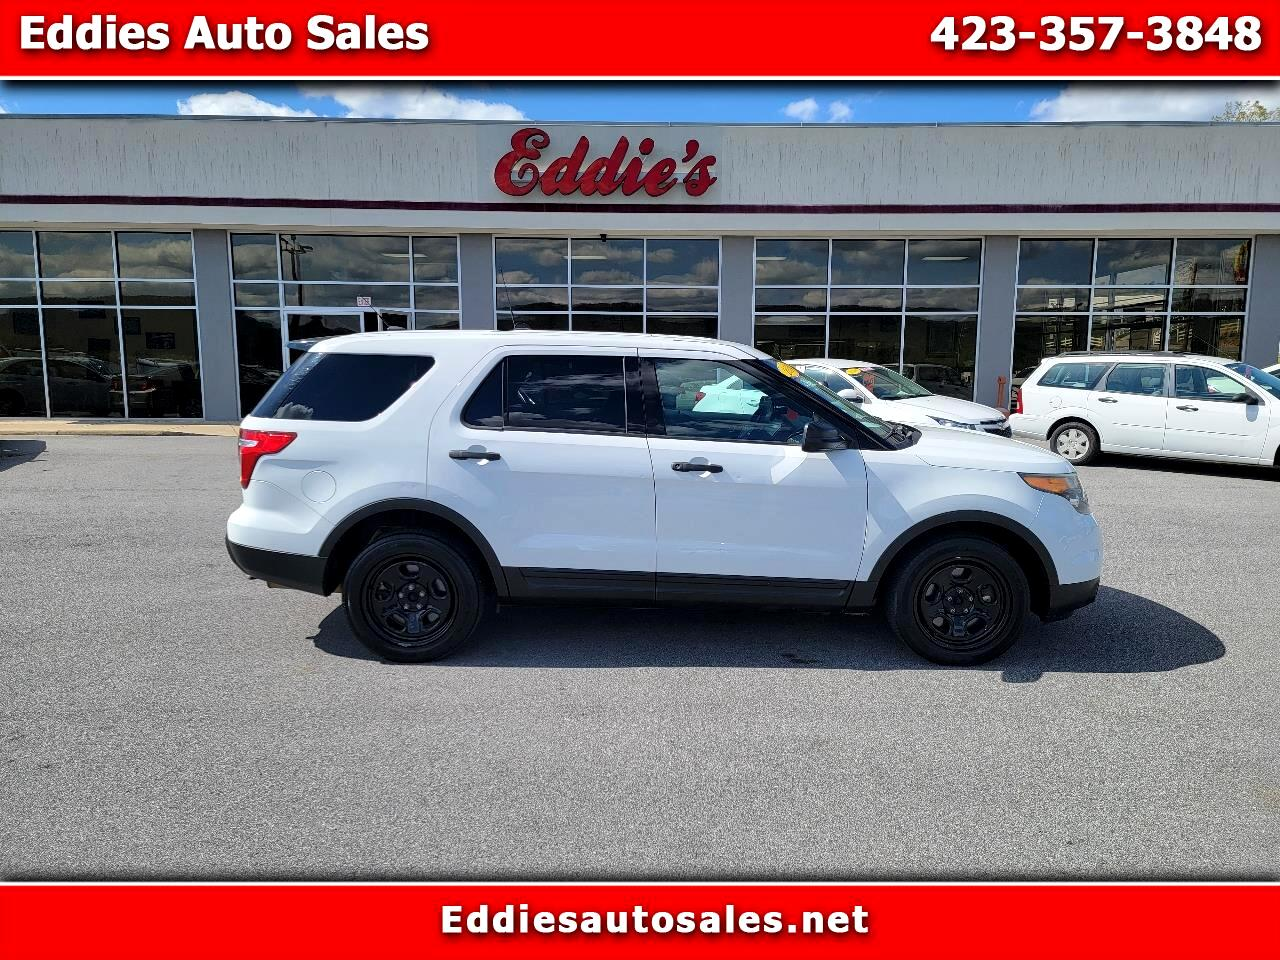 Ford Utility Police Interceptor AWD 4dr 2014